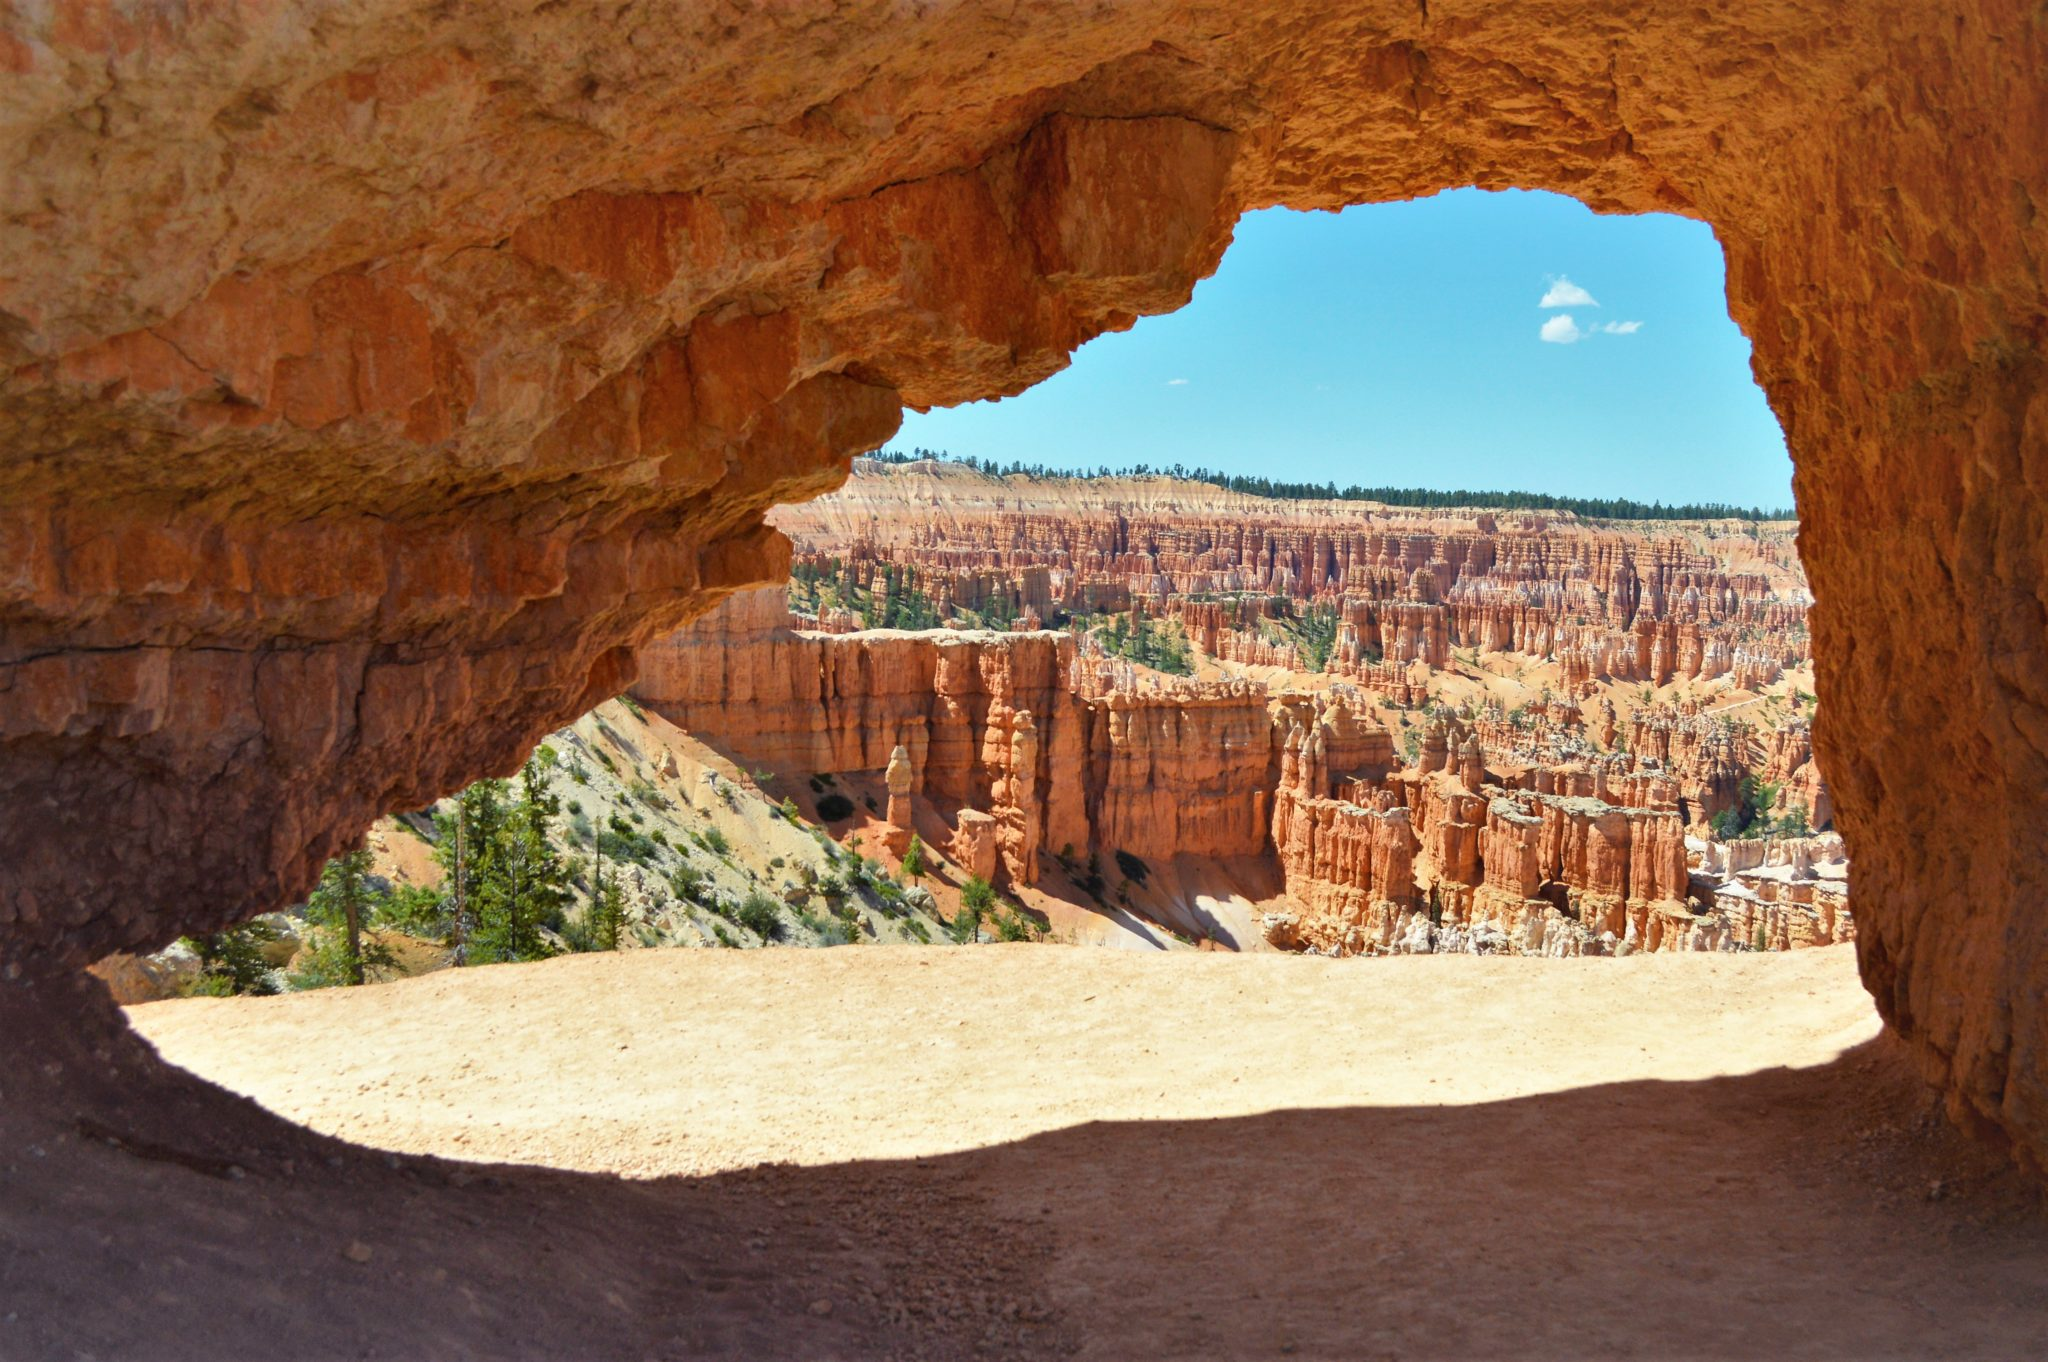 Hole in Bryce Canyon National Park, USA